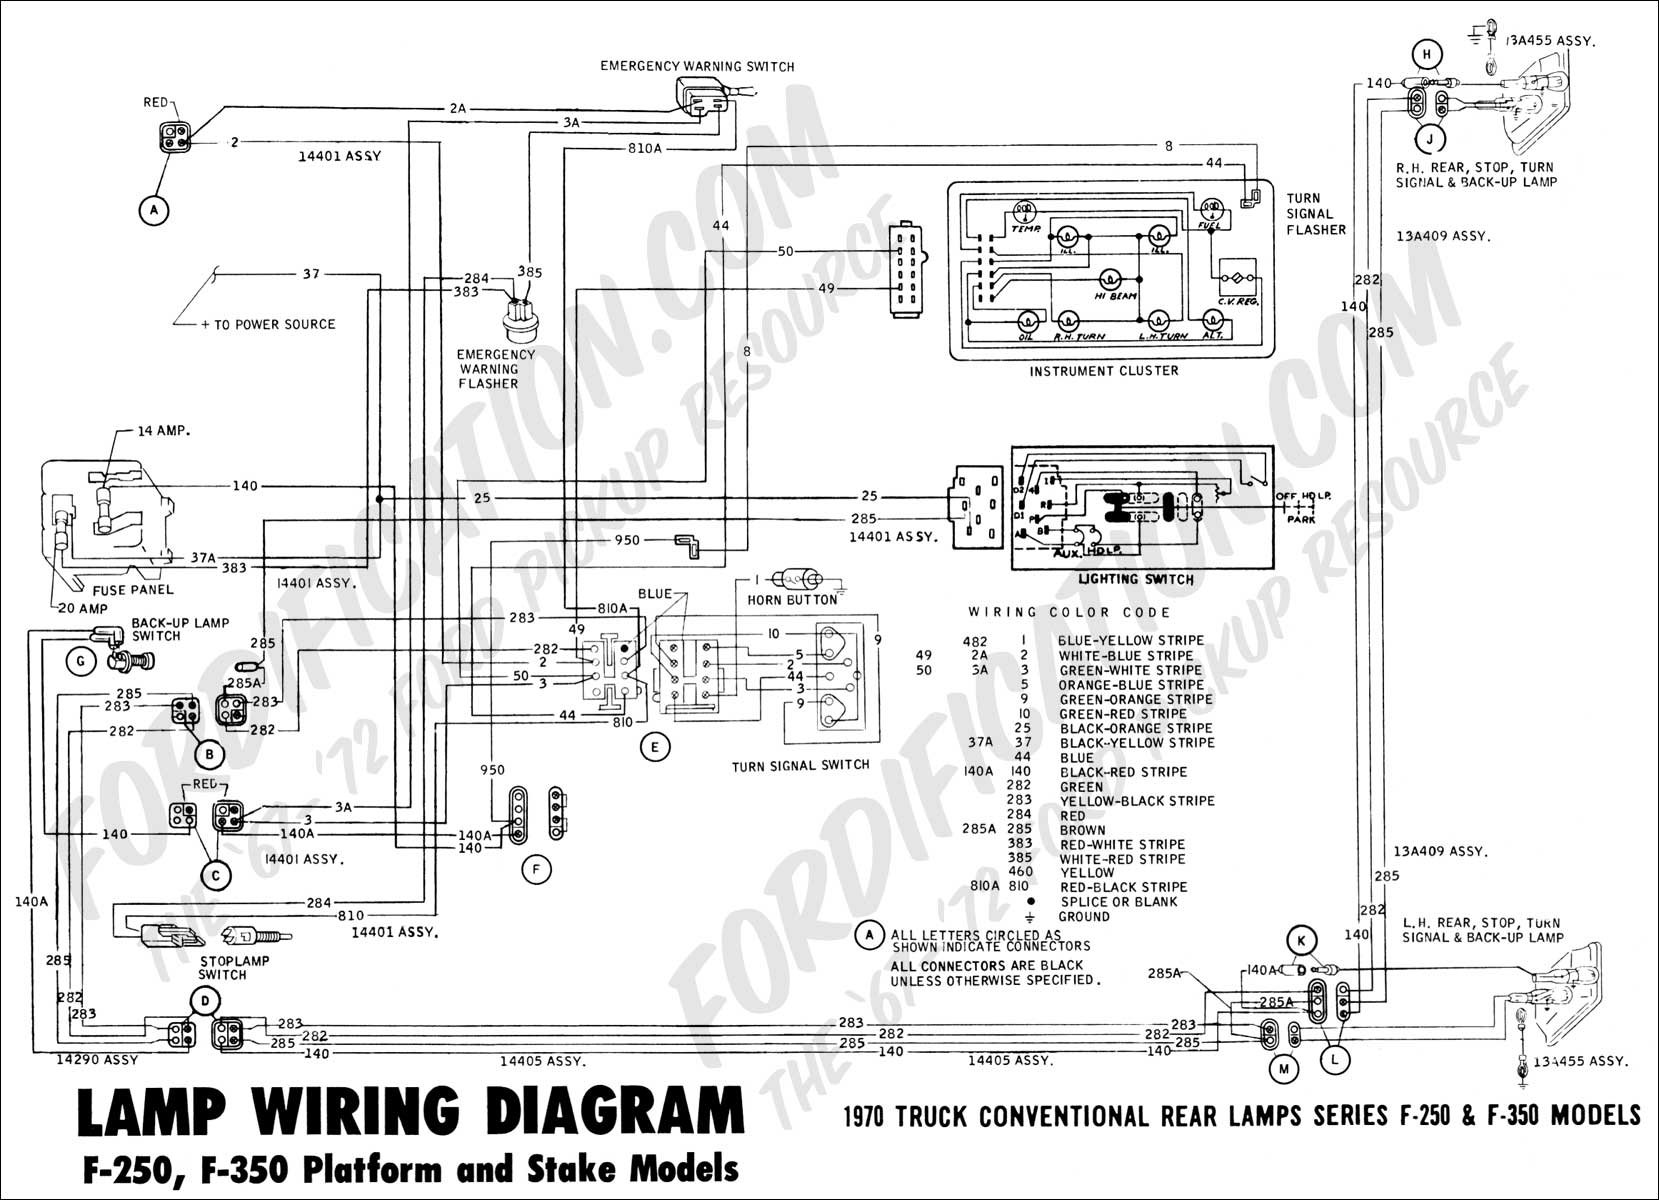 2006 ford f 250 tail light wiring diagram 2006 ford f 250 backup light wiring diagram ford truck technical drawings and schematics - section h ...